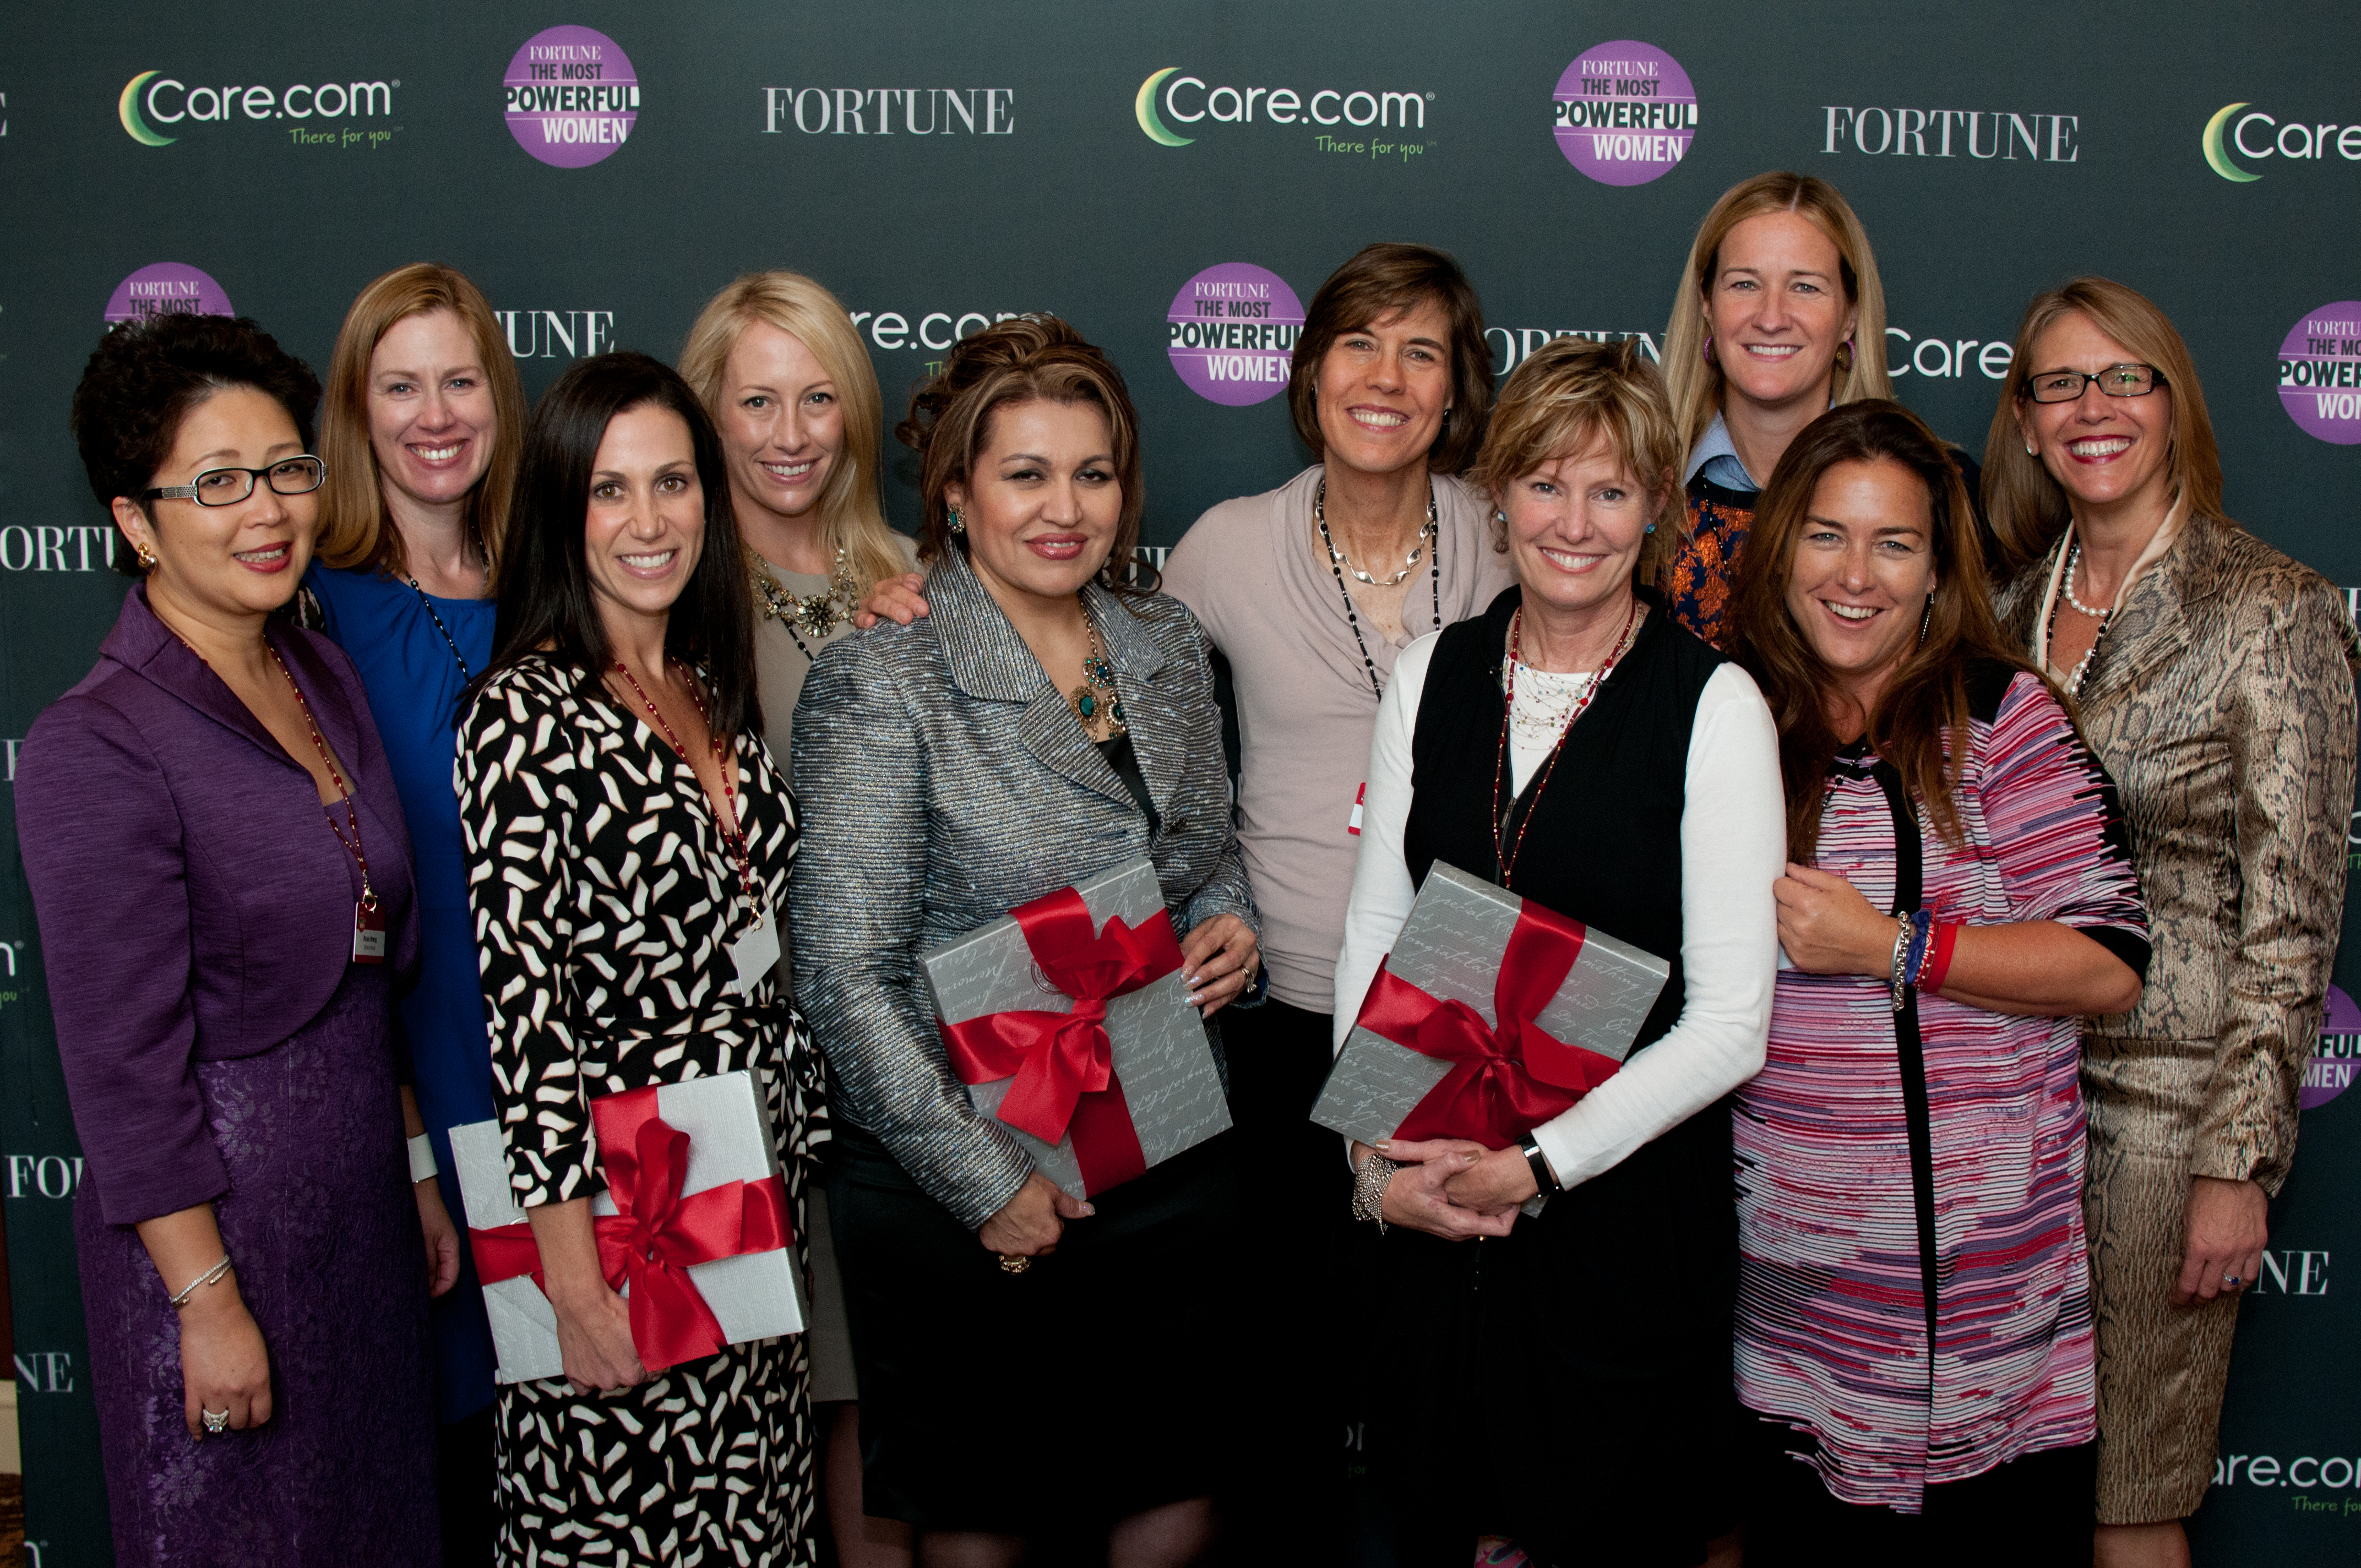 The 2013 Fortune Most Powerful Women Entrepreneur winners at last year's Fortune MPW Summit.